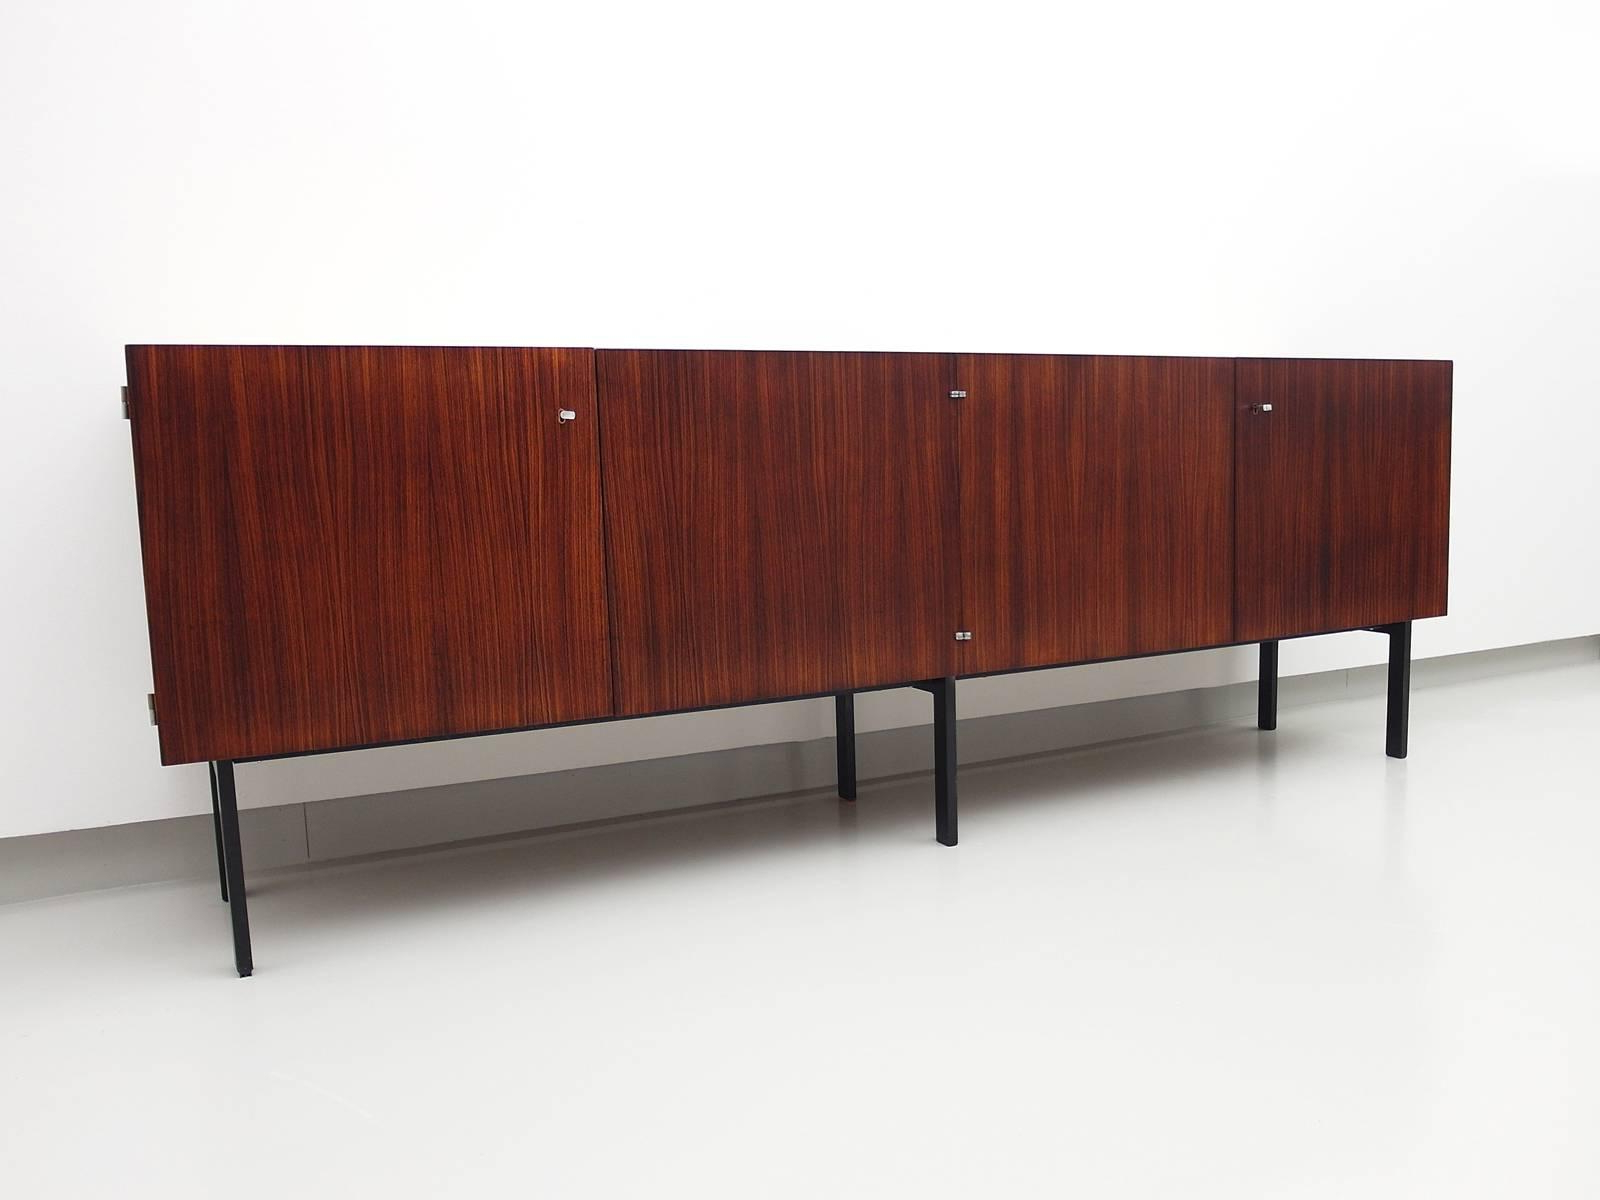 Rosewood Sideboard Attributed To Etienne Fermigier For Meubles Et Fonction,  1961 Pertaining To Etienne Sideboards (View 17 of 20)